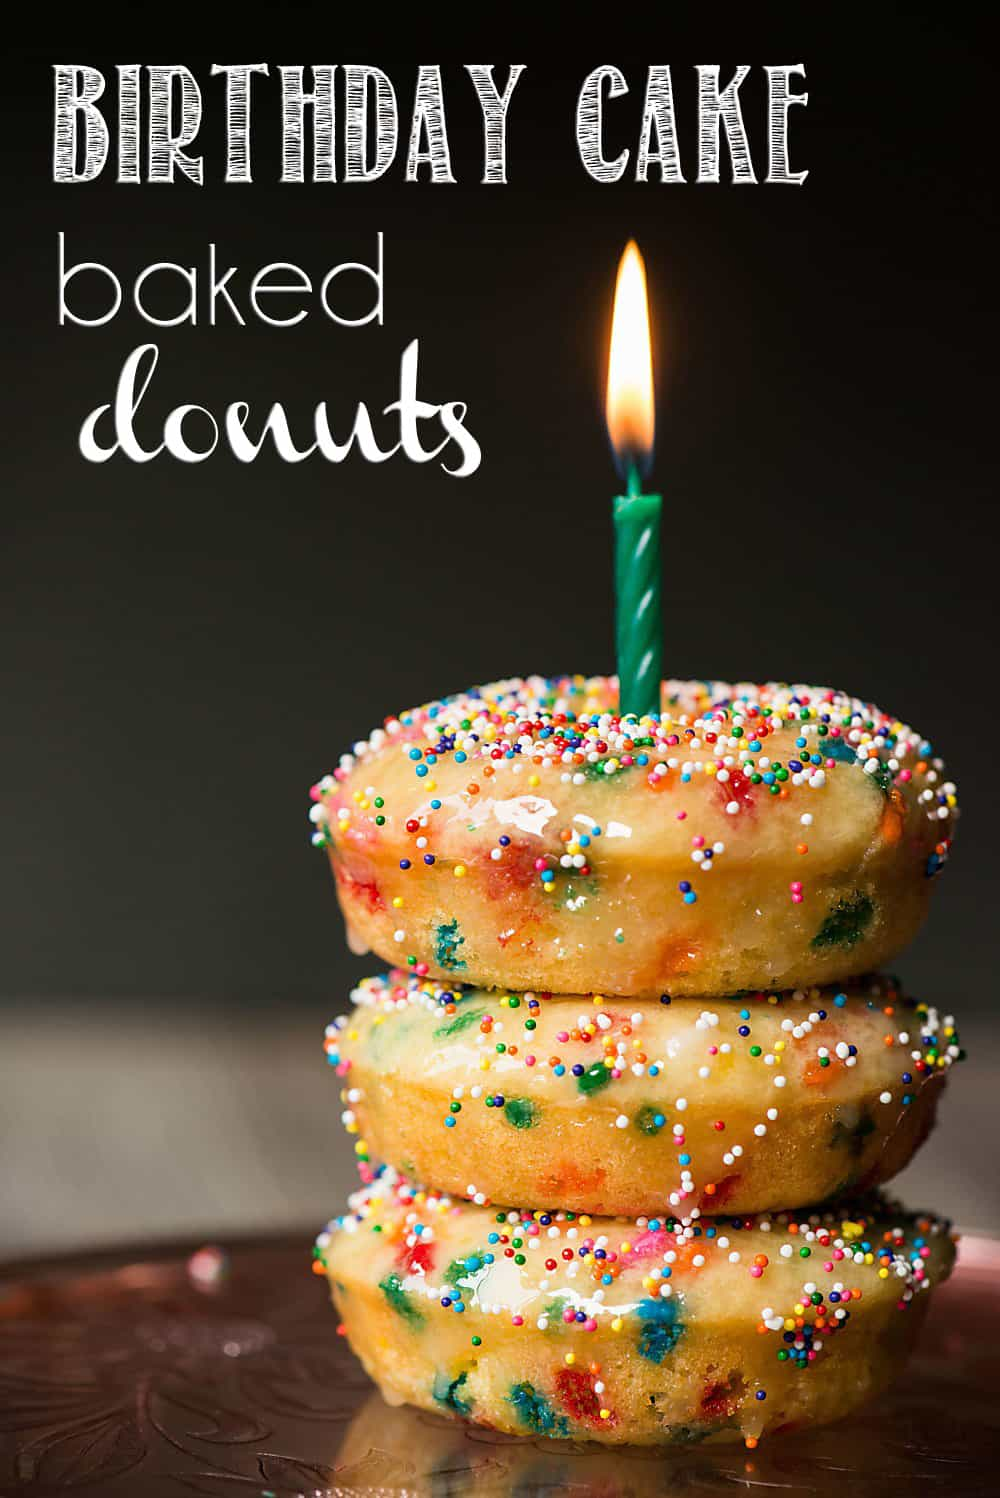 Groovy Birthday Cake Baked Donuts Recipe Video Self Proclaimed Foodie Funny Birthday Cards Online Elaedamsfinfo